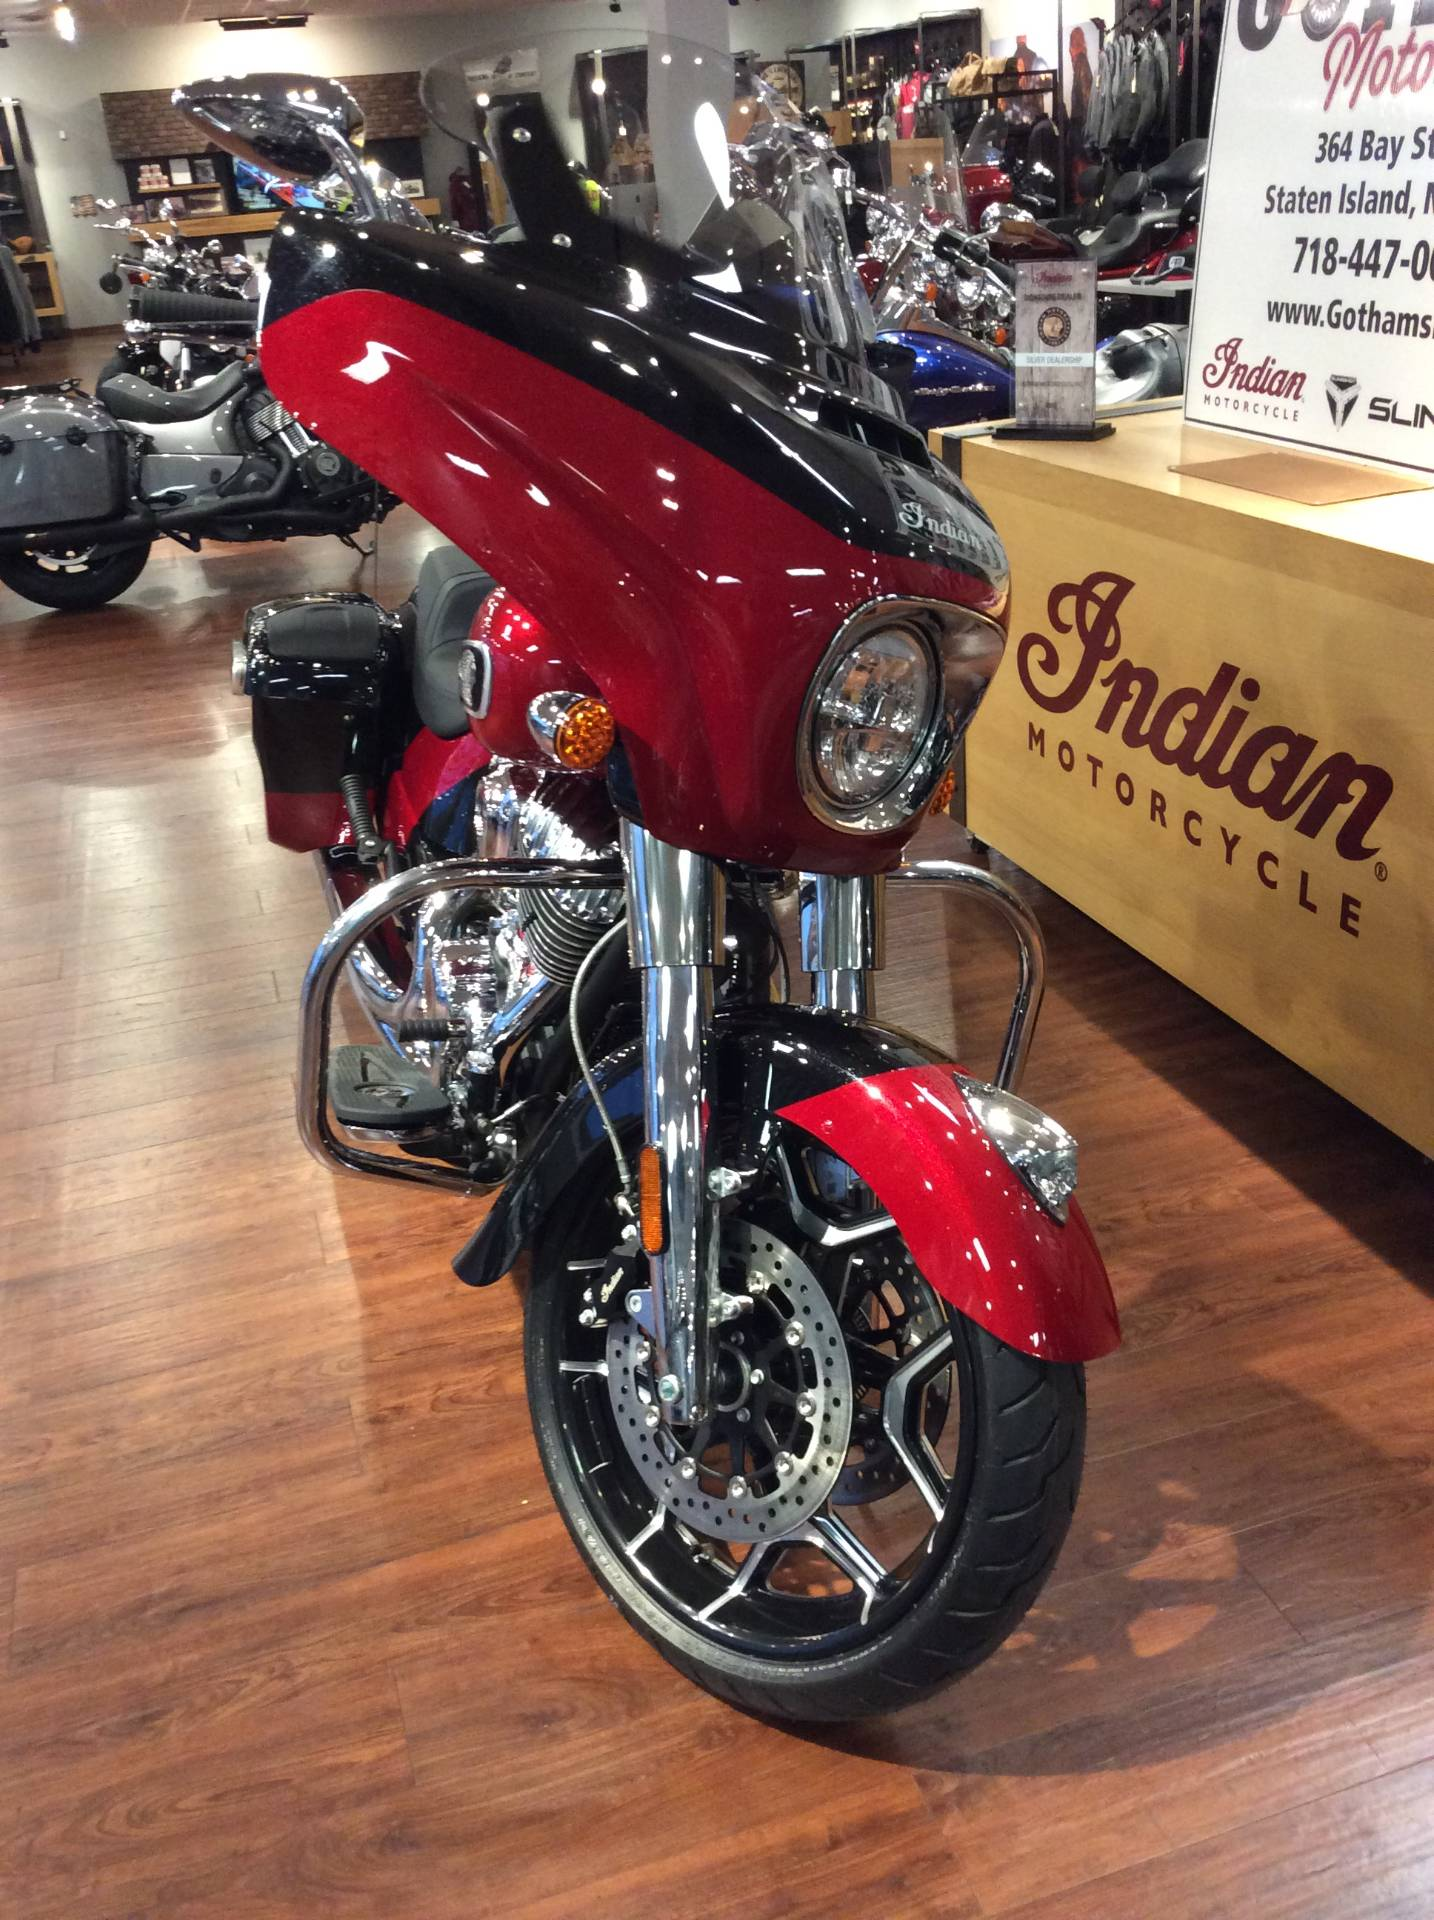 2020 Indian Chieftain® Elite in Staten Island, New York - Photo 2